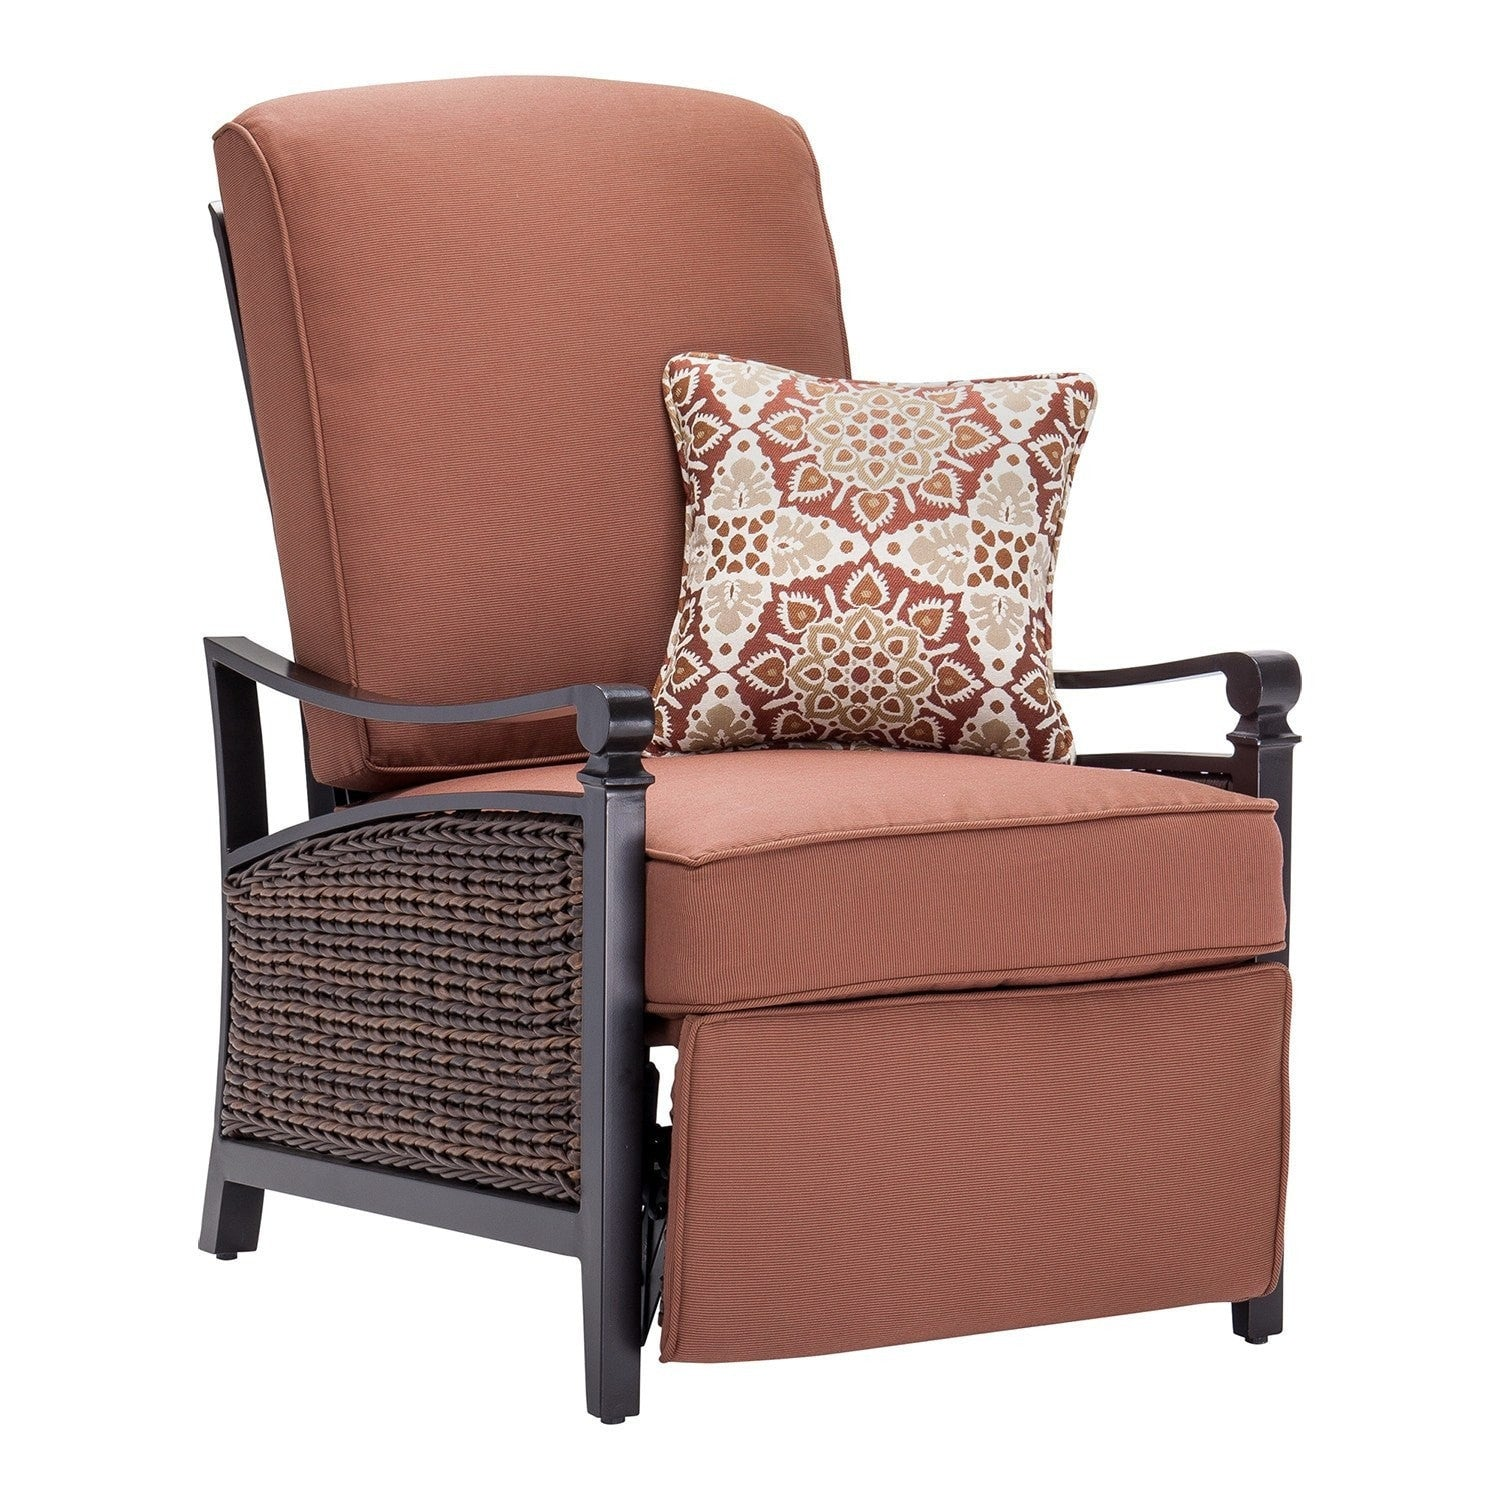 Carson patio recliner la z boy outdoor for Carson chaise lounge